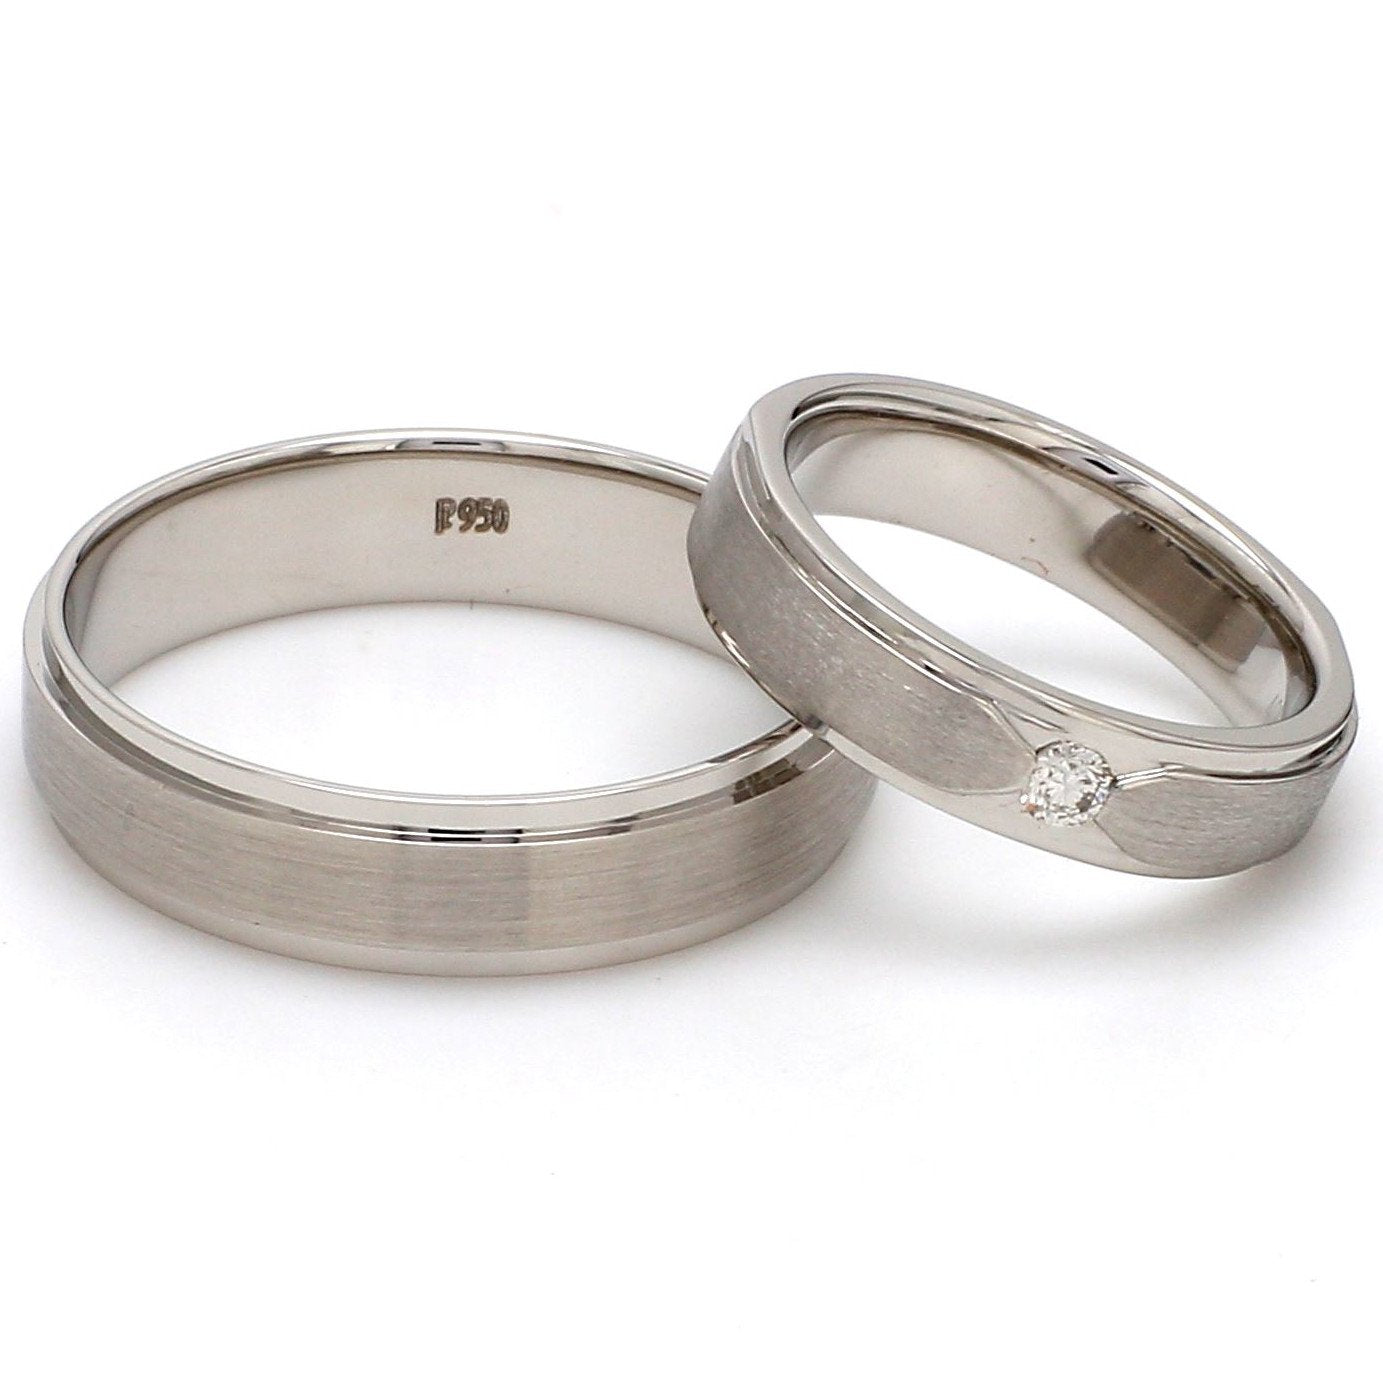 Front View of Elegant Platinum Love Bands with Matte Finish JL PT 529